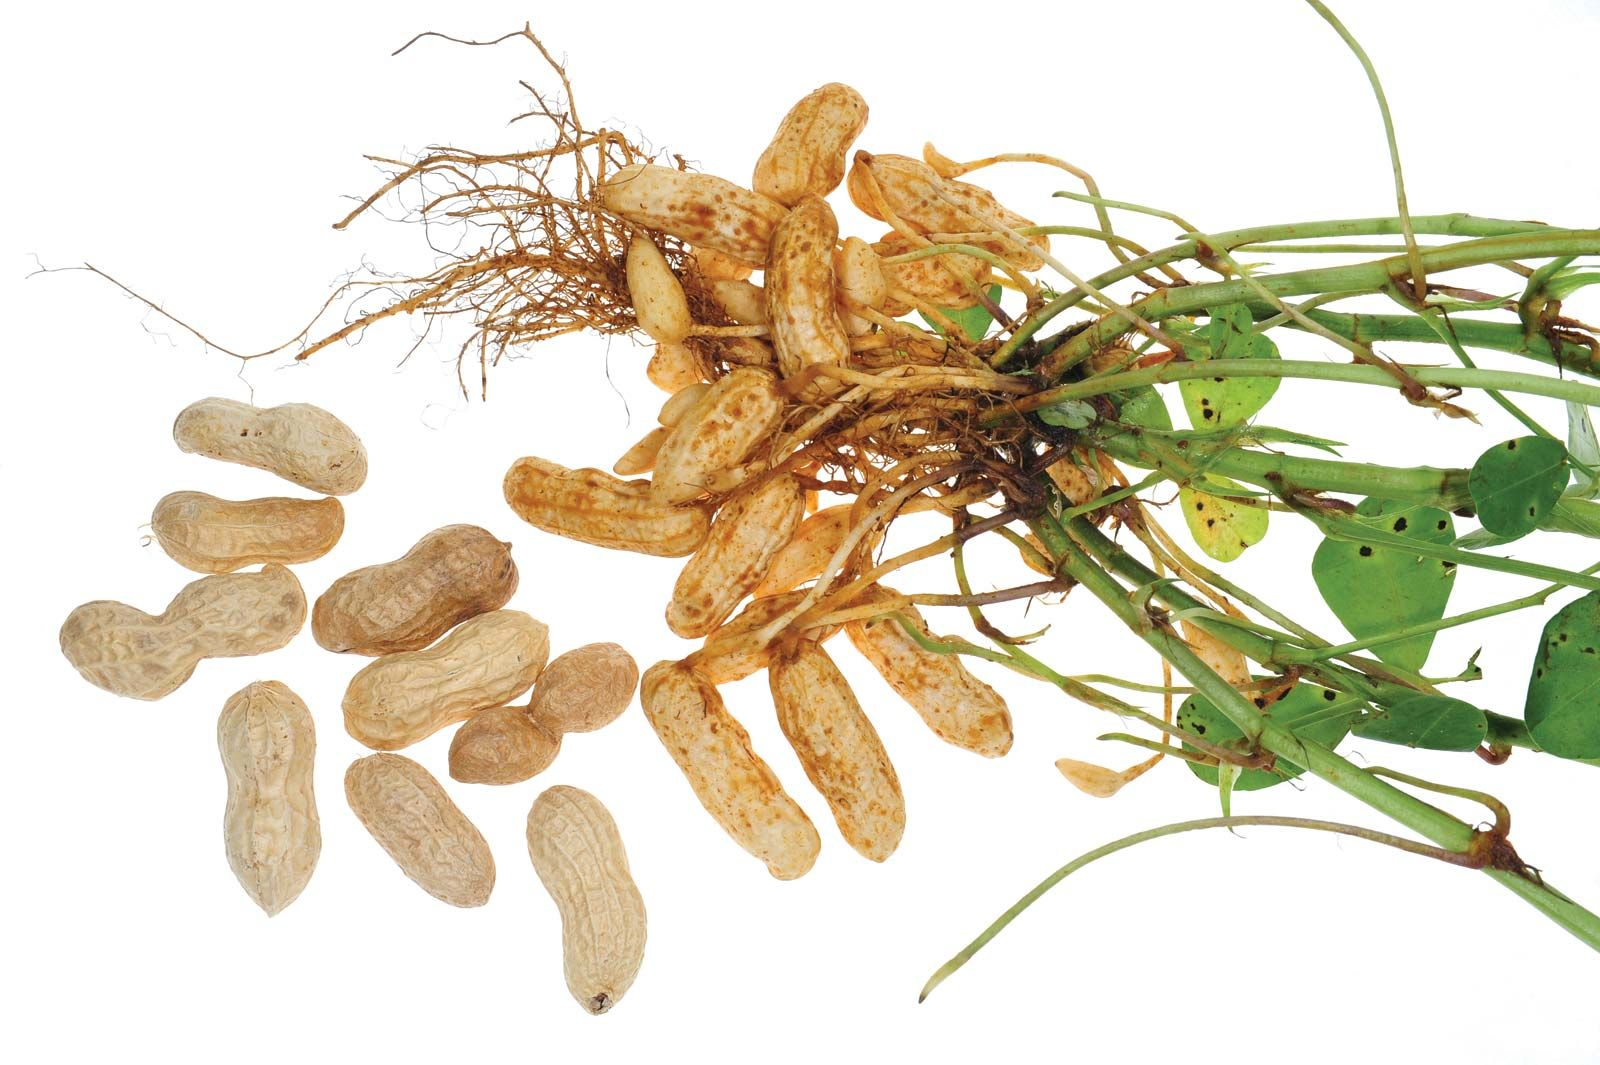 Peanut Plant Showing Peanuts Stems Roots And Leaves